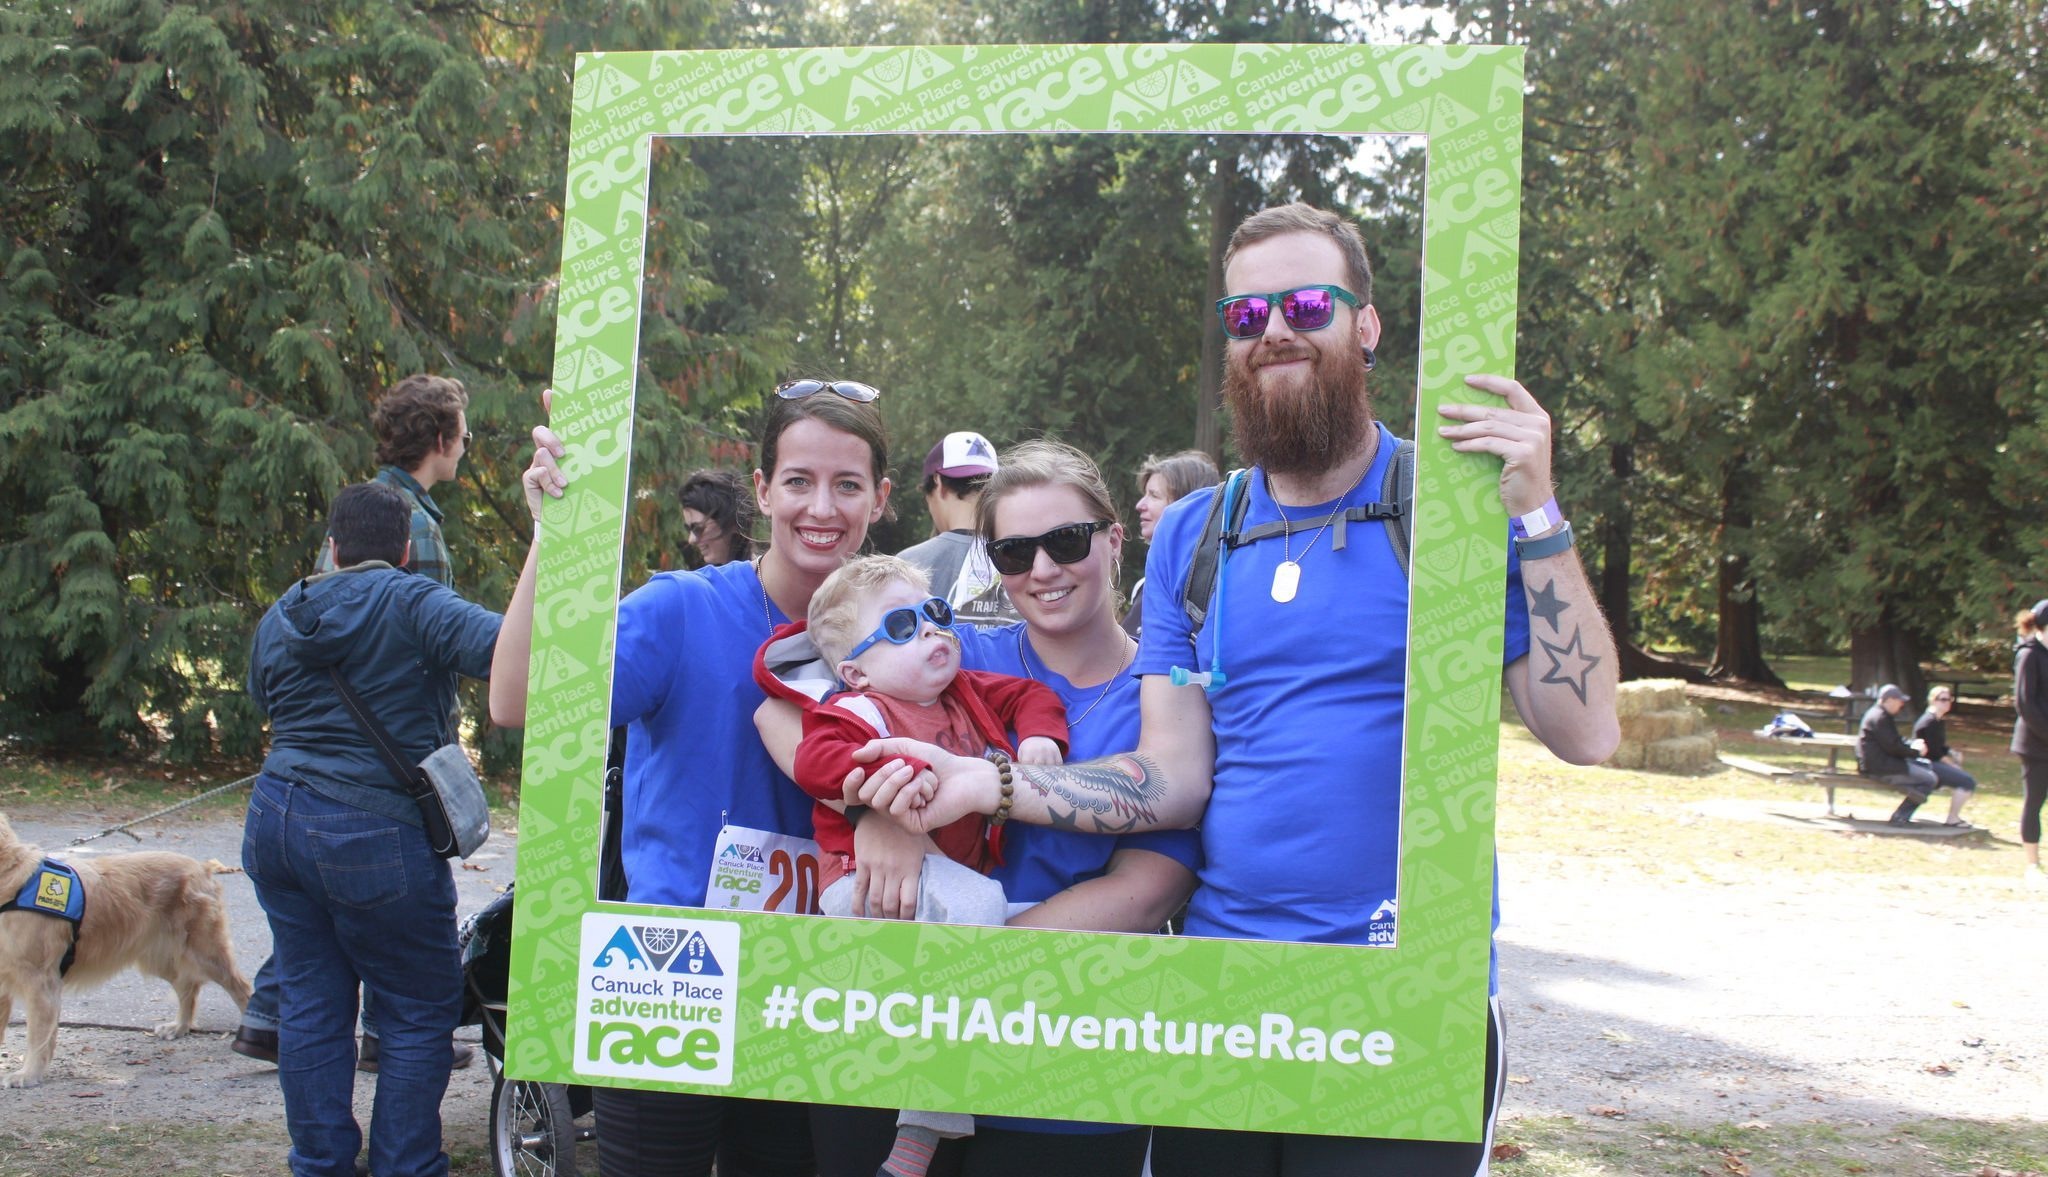 Canuck Place Adventure Race: meet the family fighting for their son's life